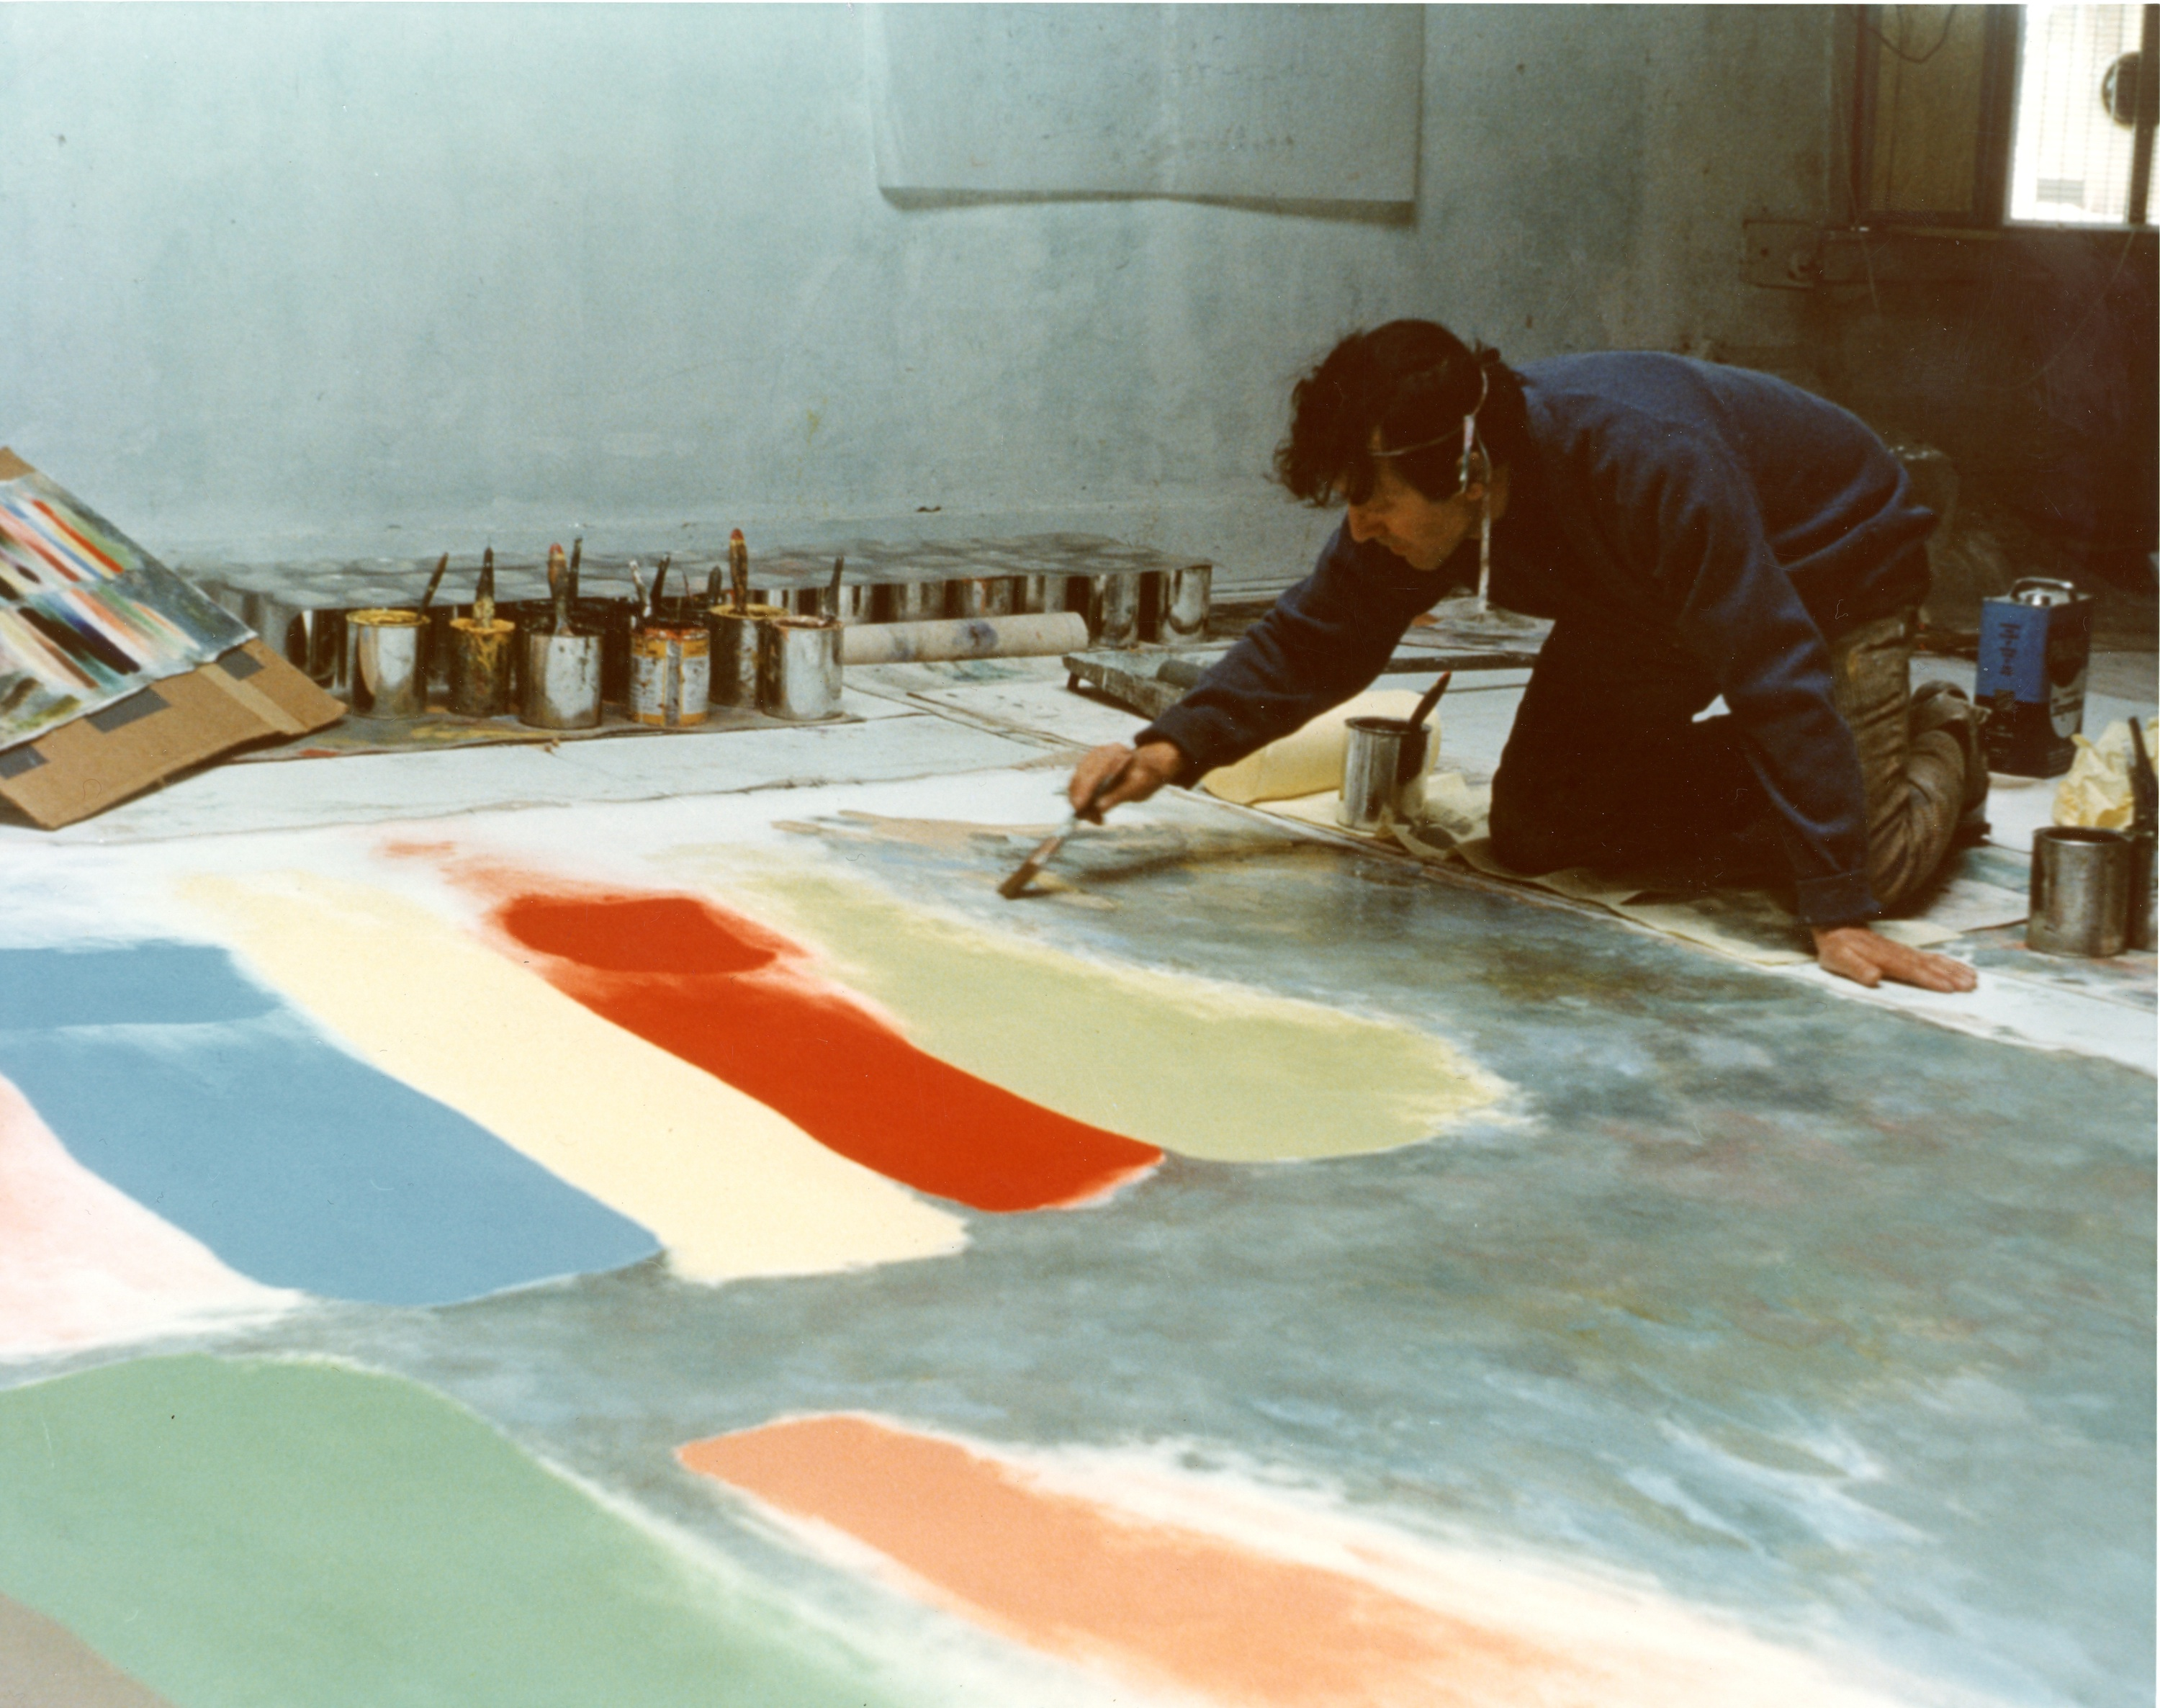 Figure 12 Friedel Dzubas at work on Procession, 1975, with oil sketch